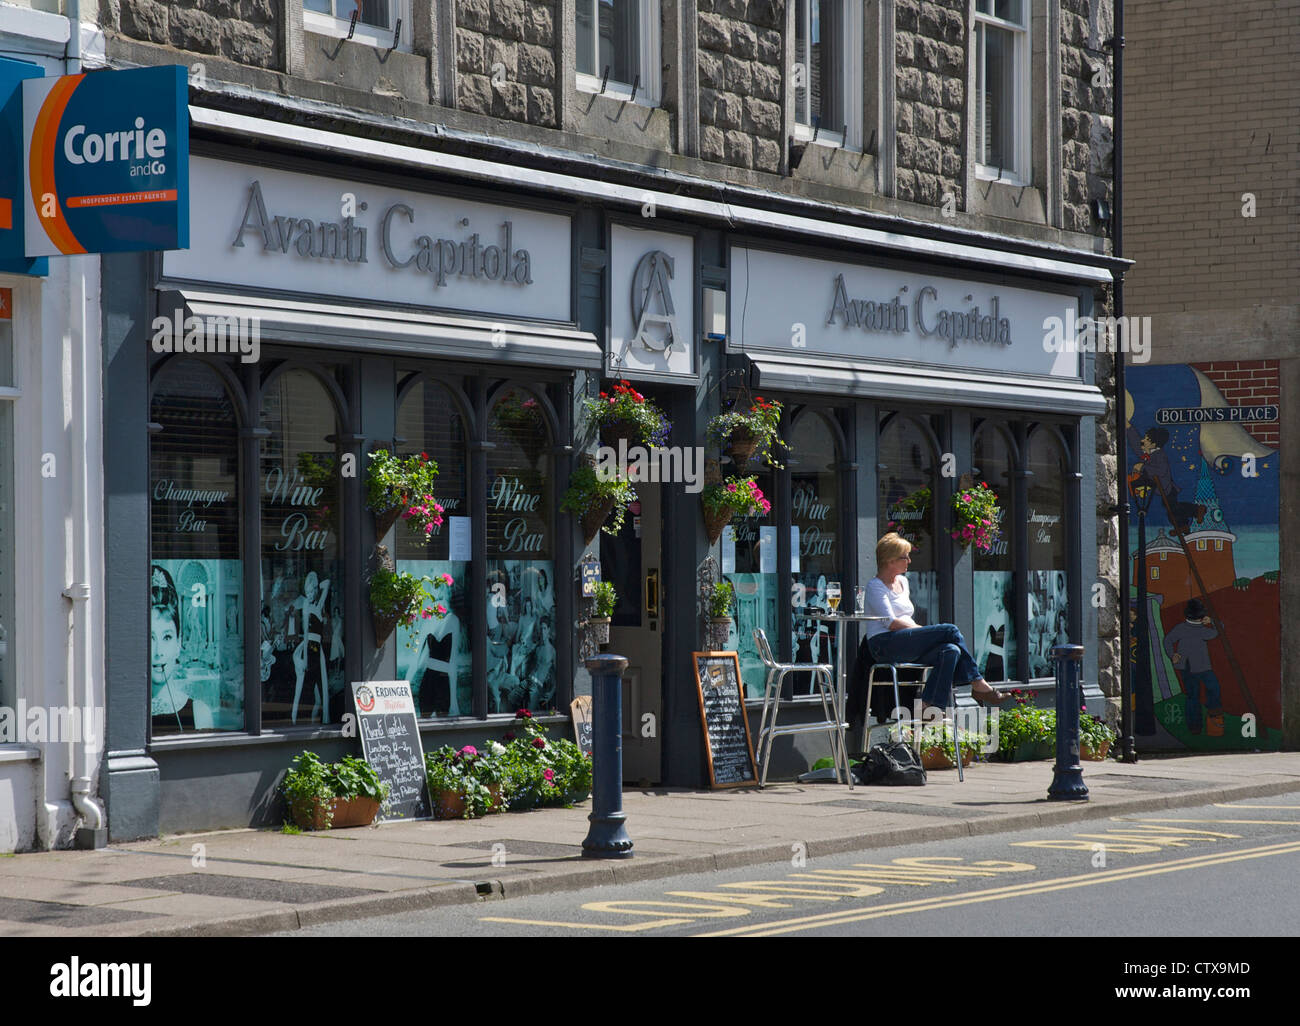 Middle-aged woman sitting outside wine bar in the town of Ulverston, South Lakeland, Cumbria, England UK - Stock Image